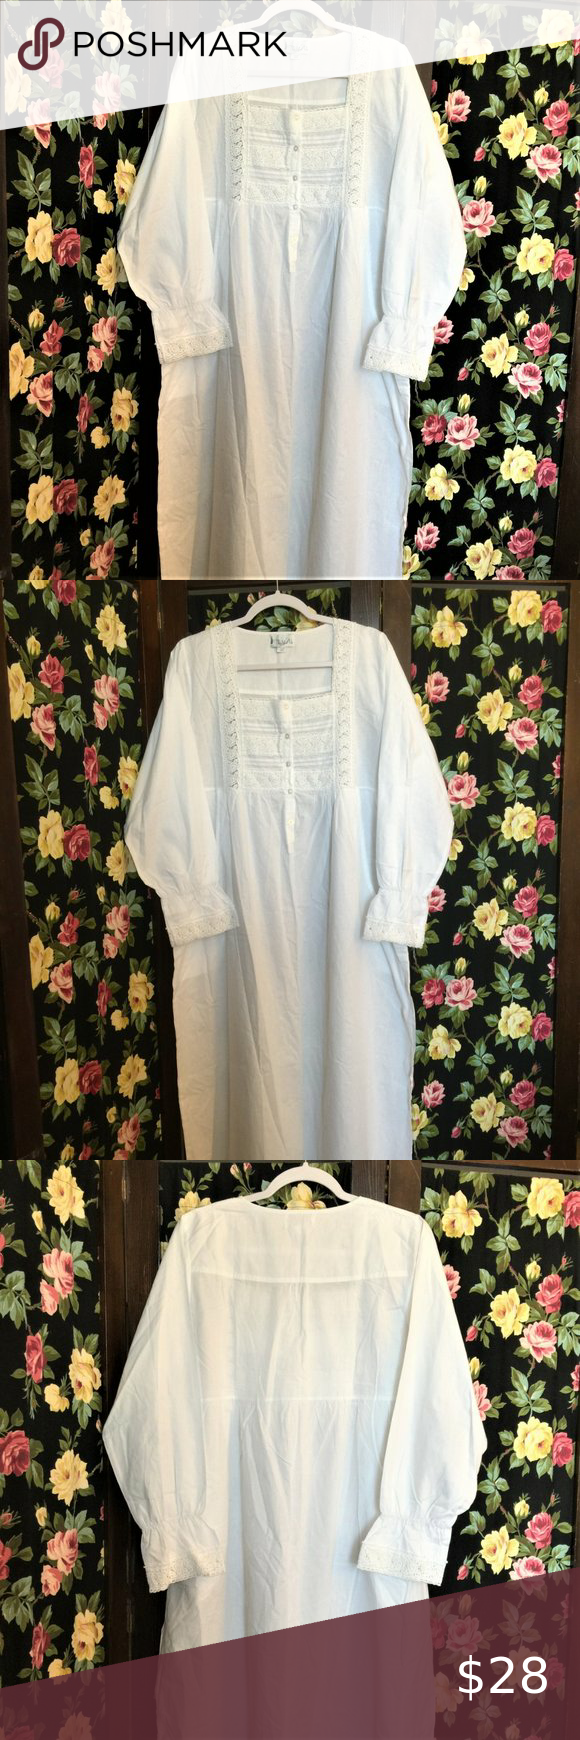 100% Cotton White Vintage Style Prarie Nightgown The 1 For U  100% Cotton White Vintage Style Prarie Nightgown Crochet Lace Bodice & Sleeve Cuff Length: Approx 52-53